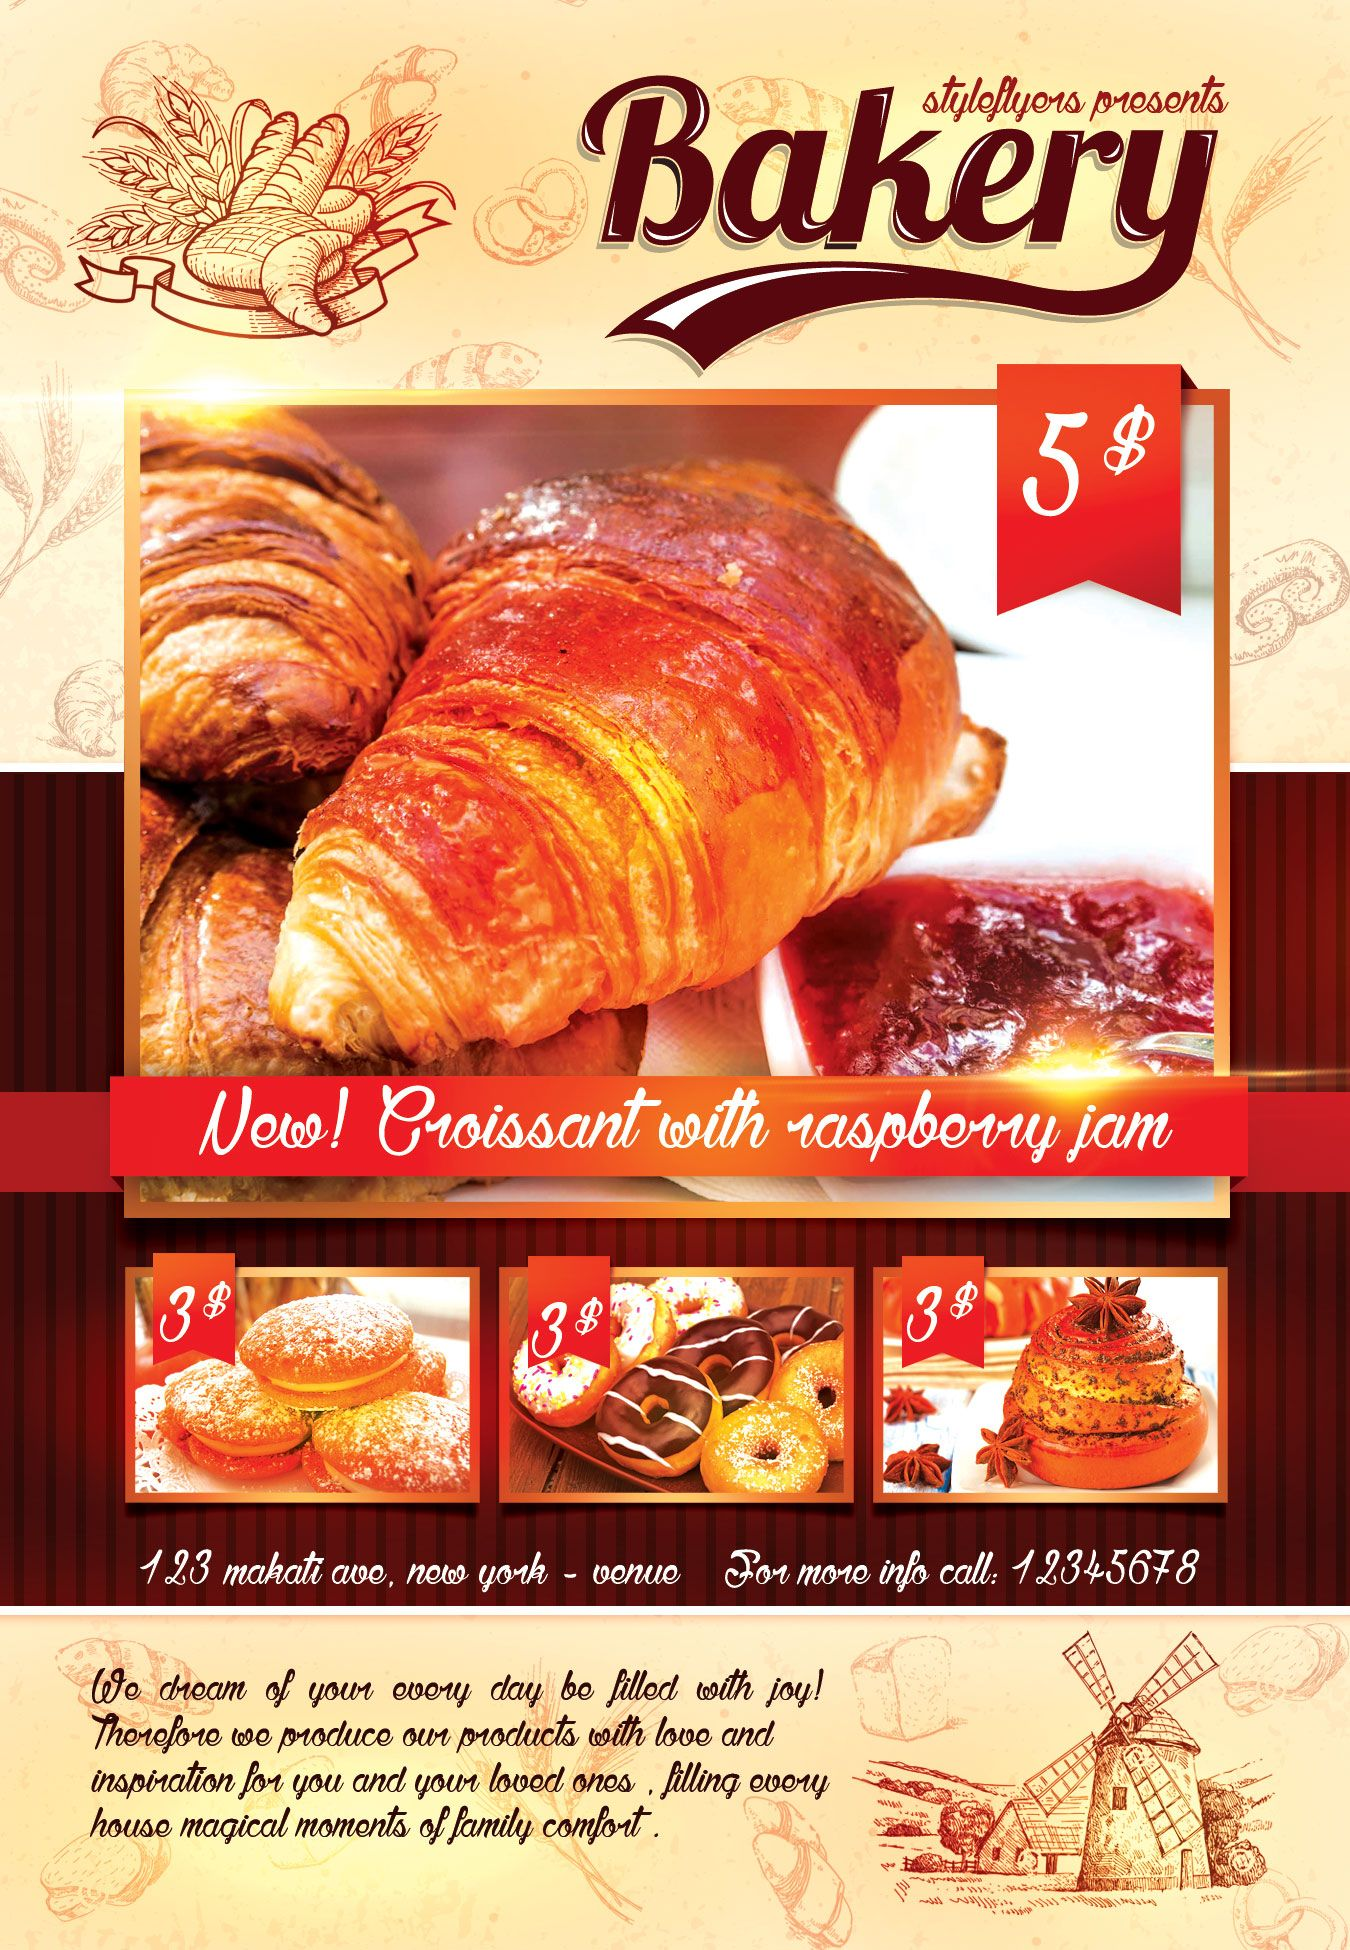 Boost Your Bakery Shop With Our Free Bakery Psd Flyer Template Get - Bakery flyer templates free